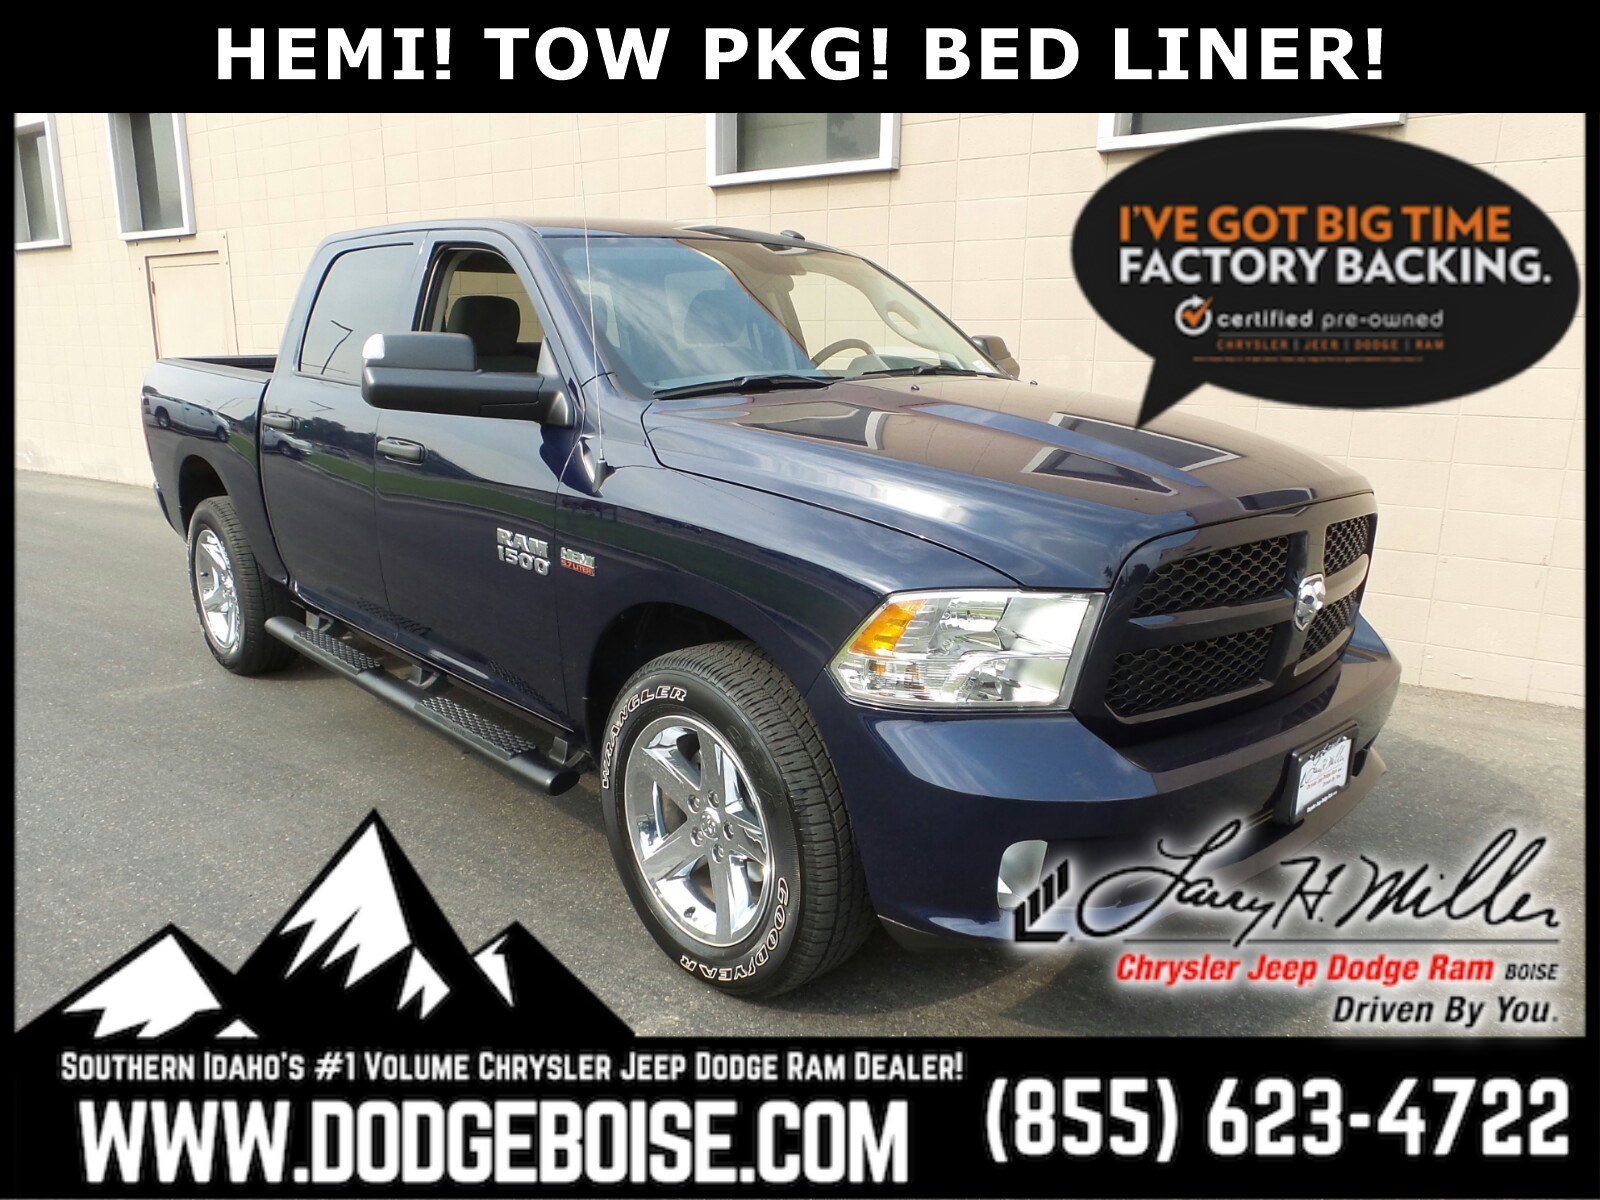 Featured Used 2018 Ram 1500 Crew Cab Express 4WD HEMI! TOW PKG! BED LINER! Truck Crew Cab for sale near you in Boise, ID